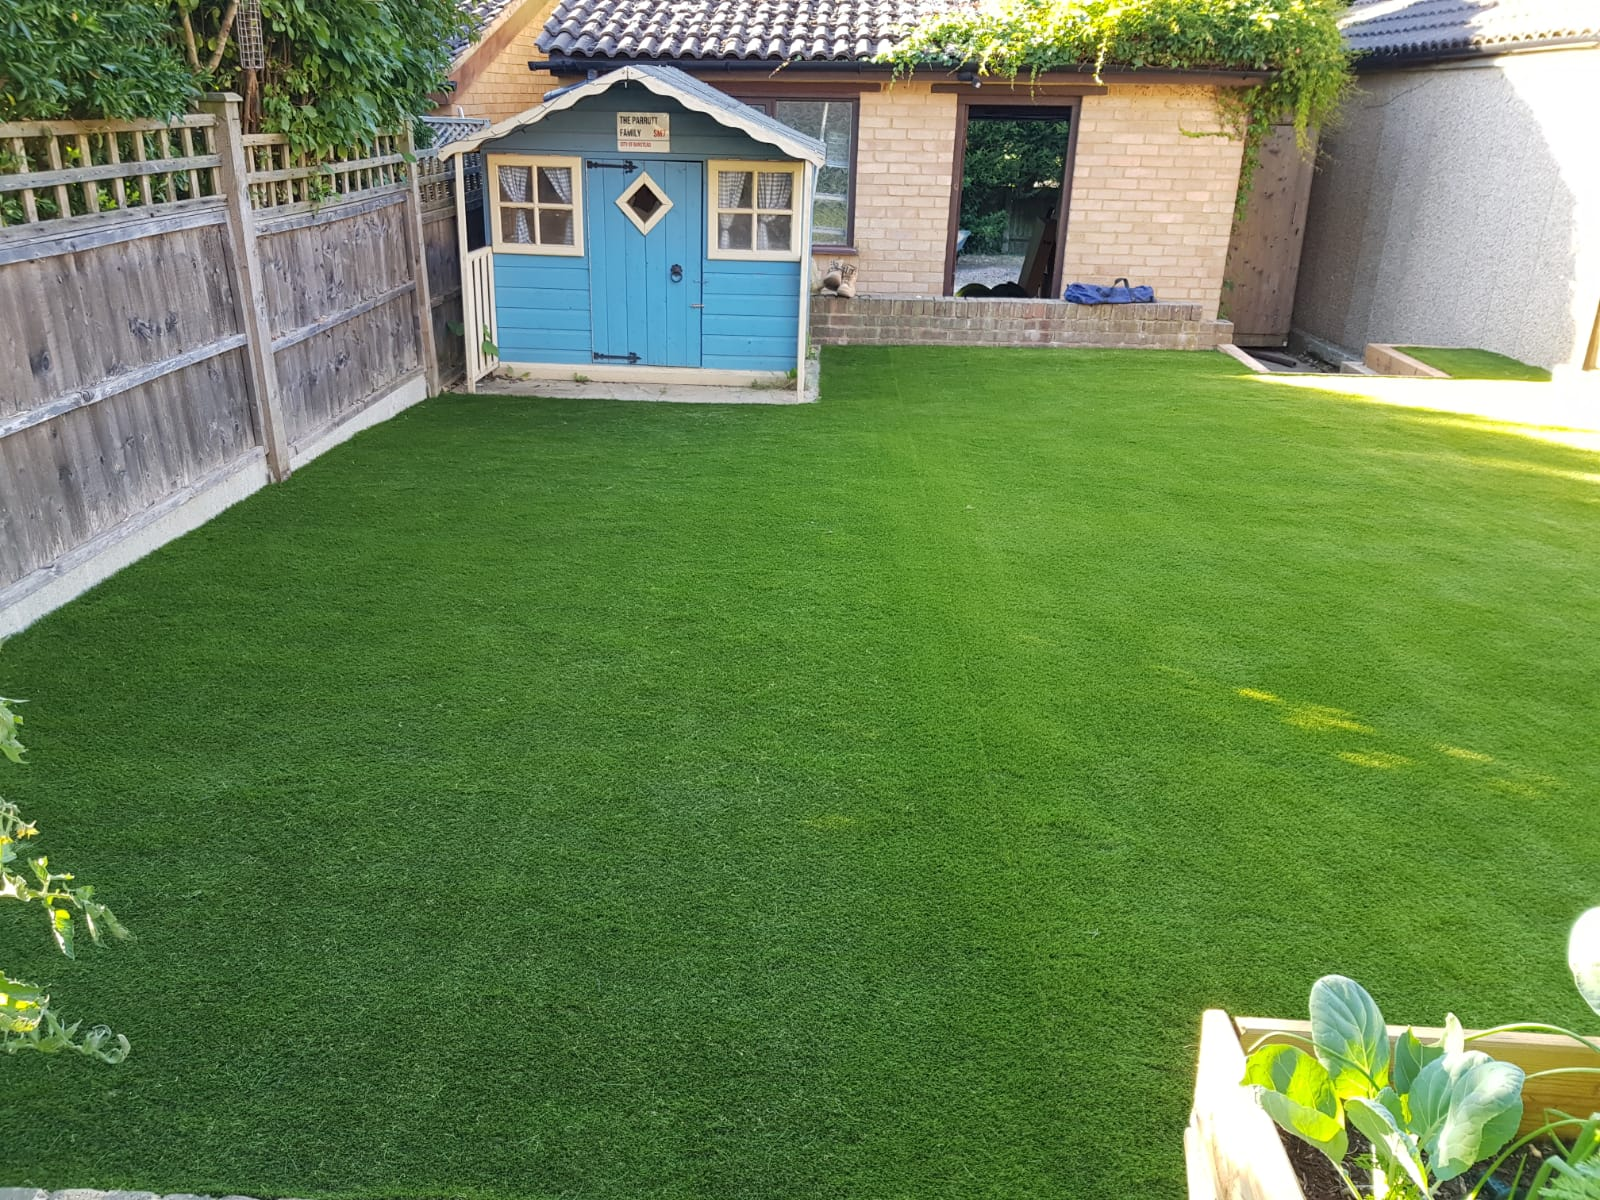 Kewlees Artificial Grass and Ladders